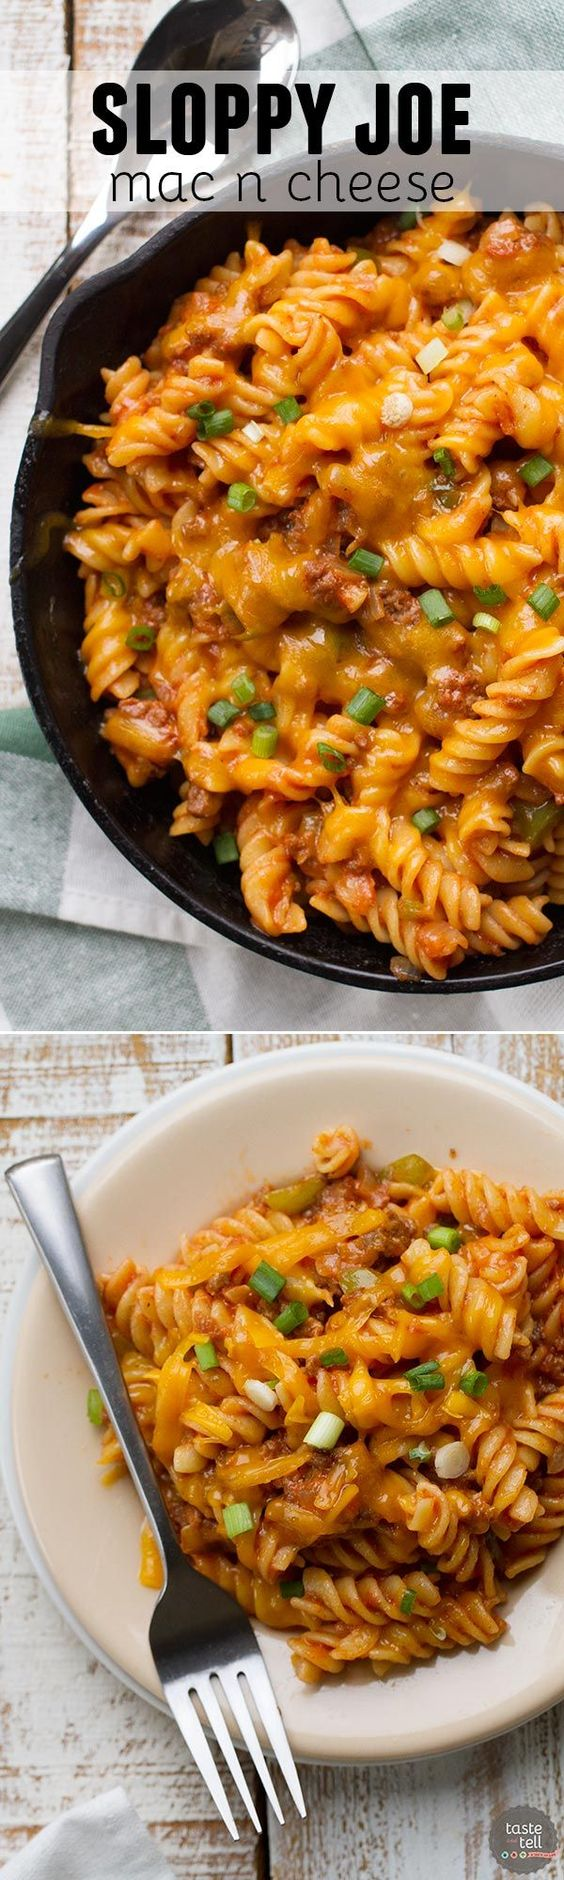 Comfort food in under 30 minutes! This Sloppy Joe Mac n Cheese takes the flavors of a sloppy joe and puts them in a big bowl of comforting pasta. The recipe makes 2 generous servings, but can easily be doubled or tripled to feed a crowd!: